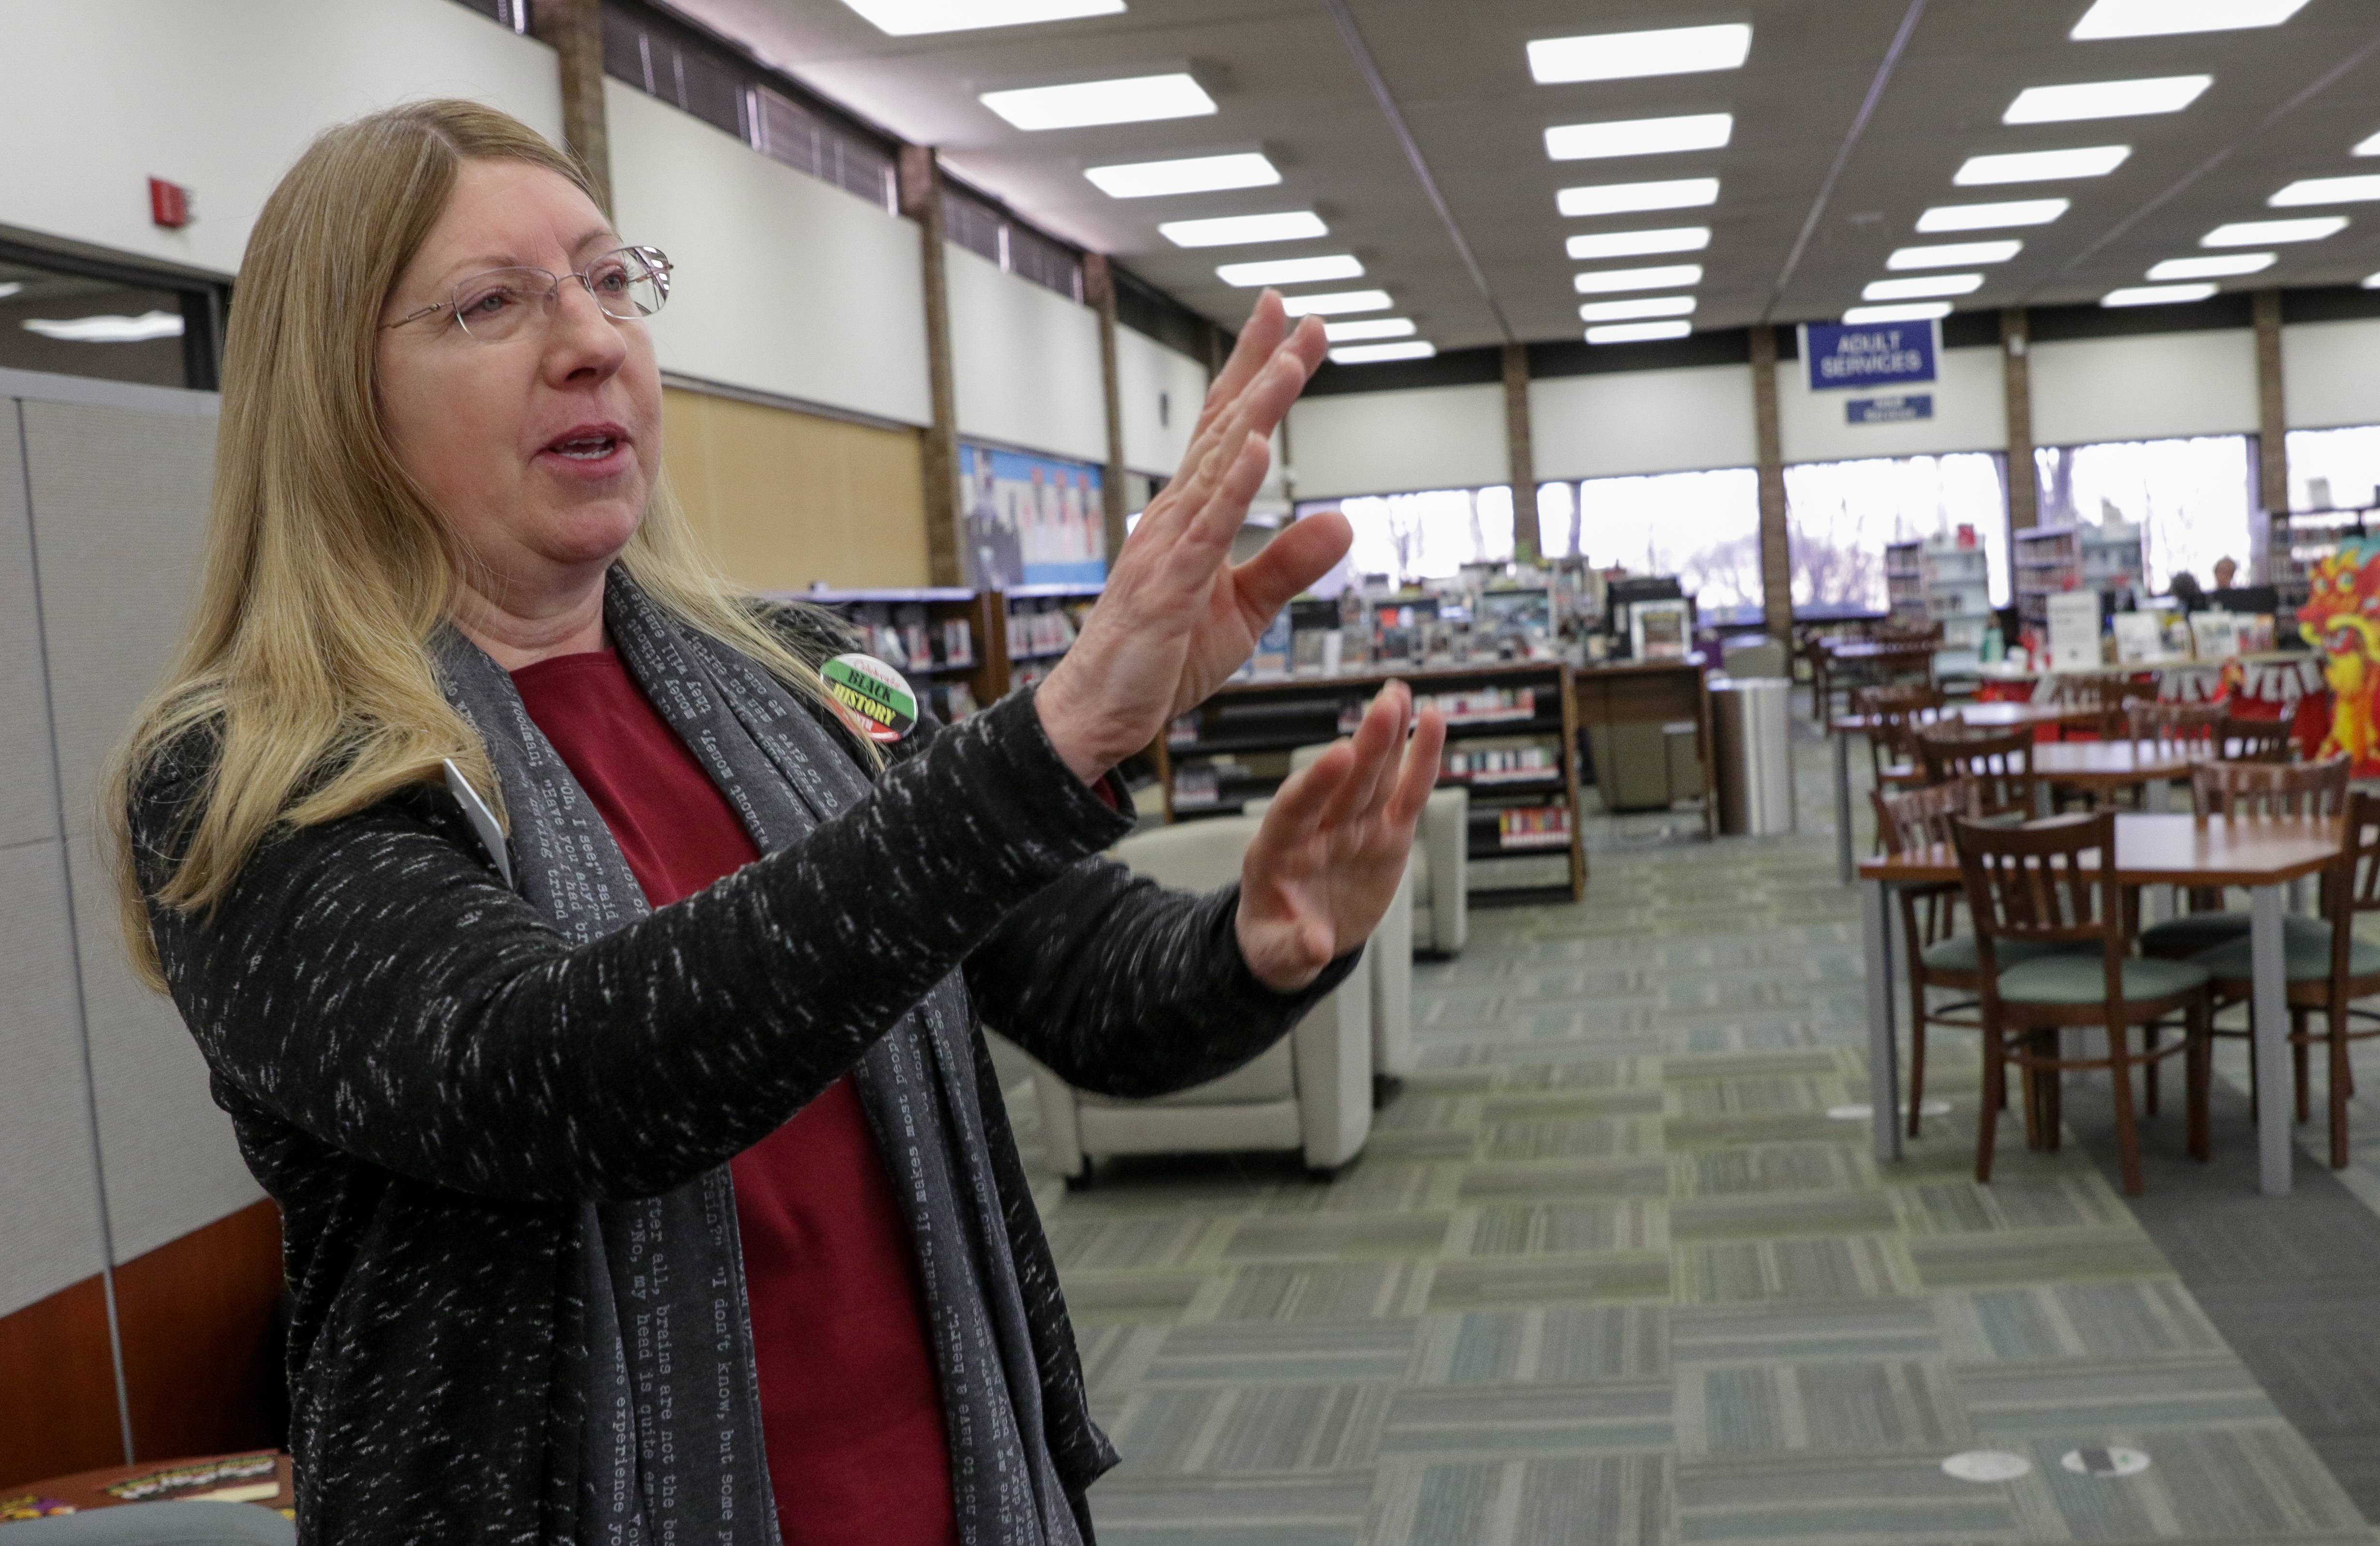 At 1:30 p.m. Feb. 18, Carol Stream Public Library Director Susan Westgate will host a forum on the proposed renovation.